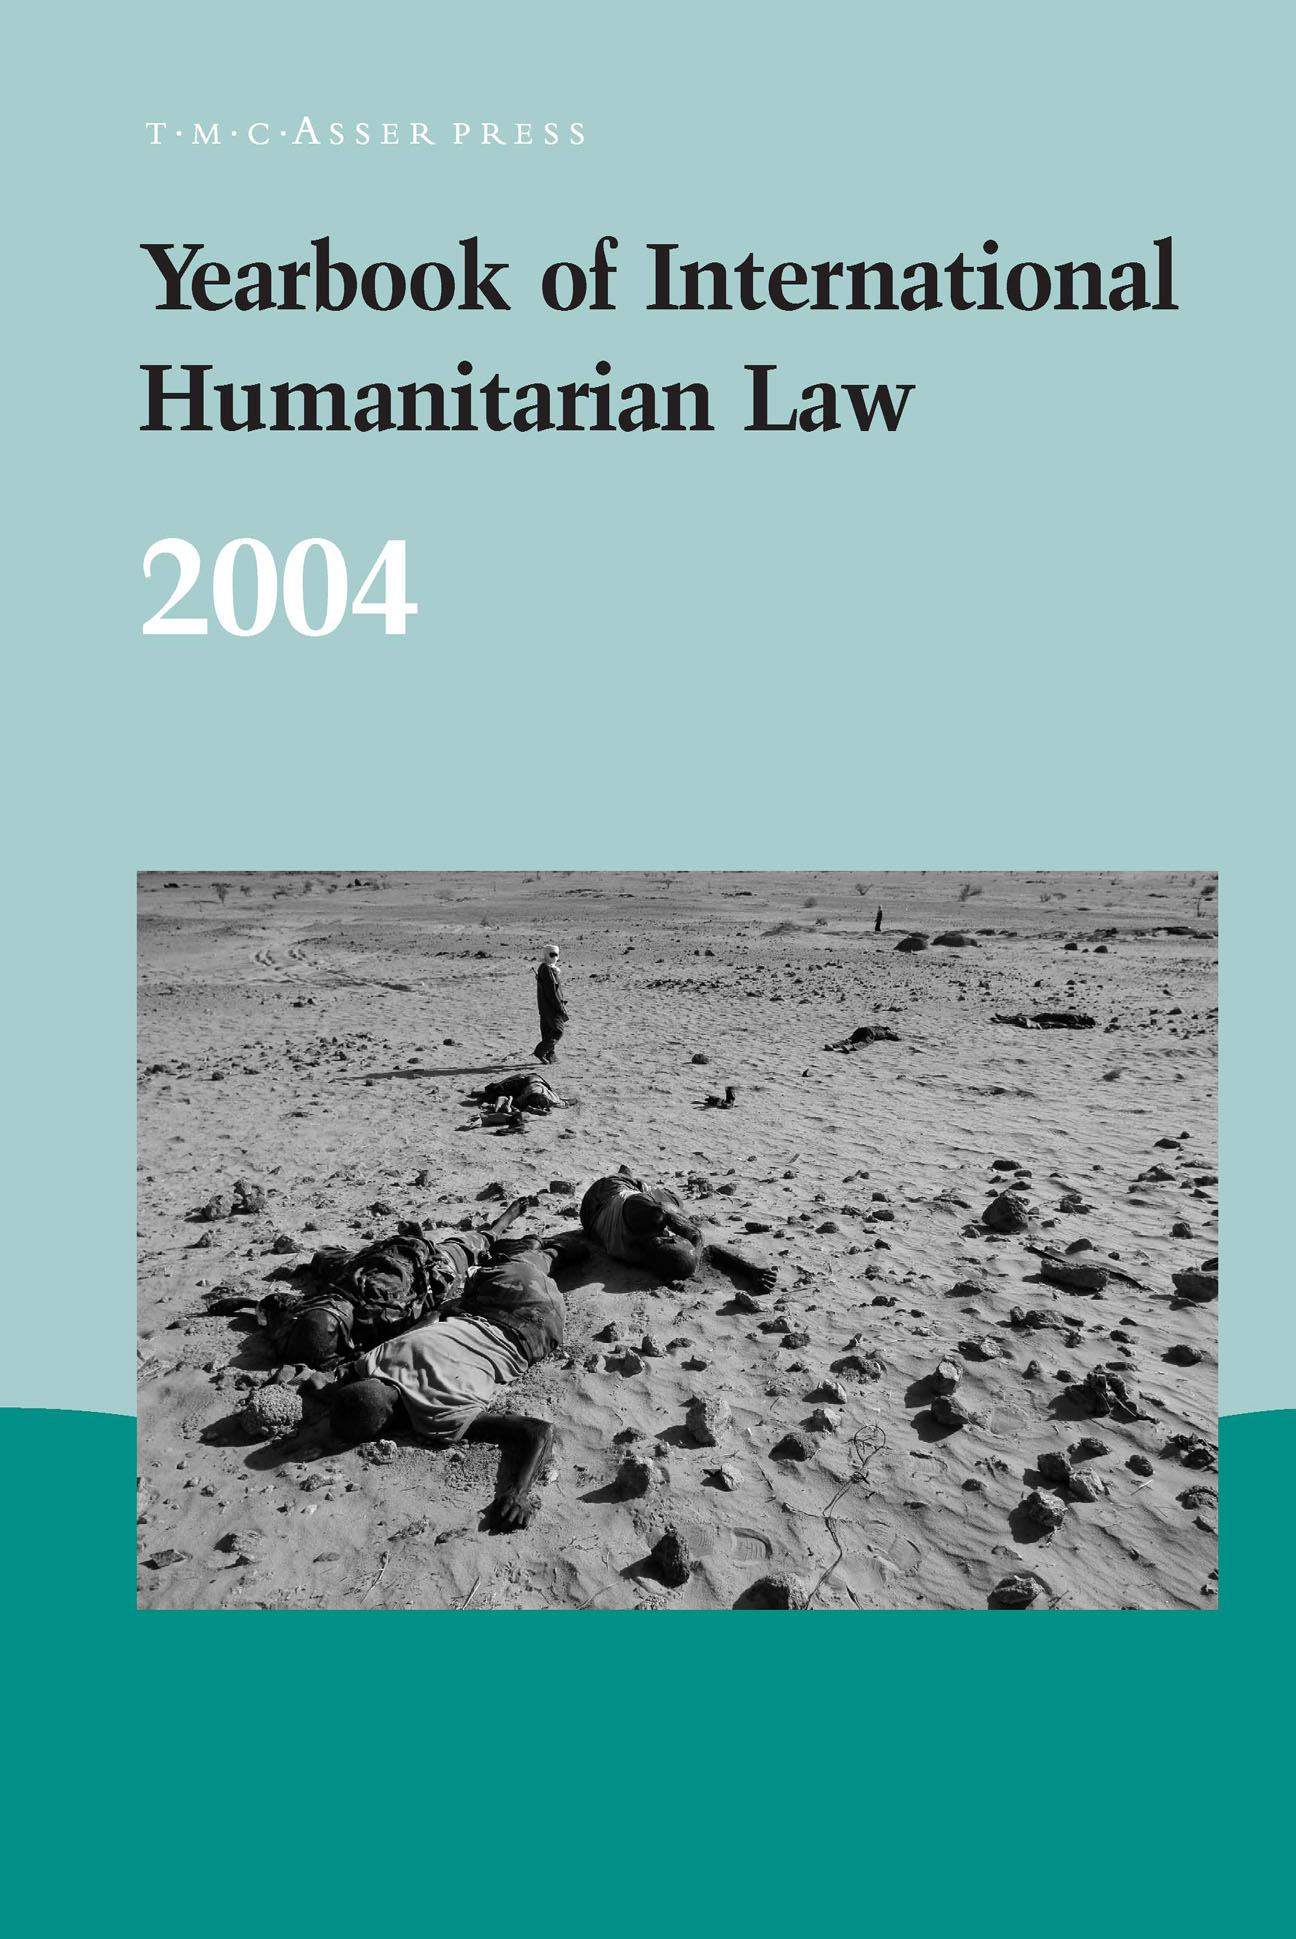 Yearbook of International Humanitarian Law – Volume 7, 2004